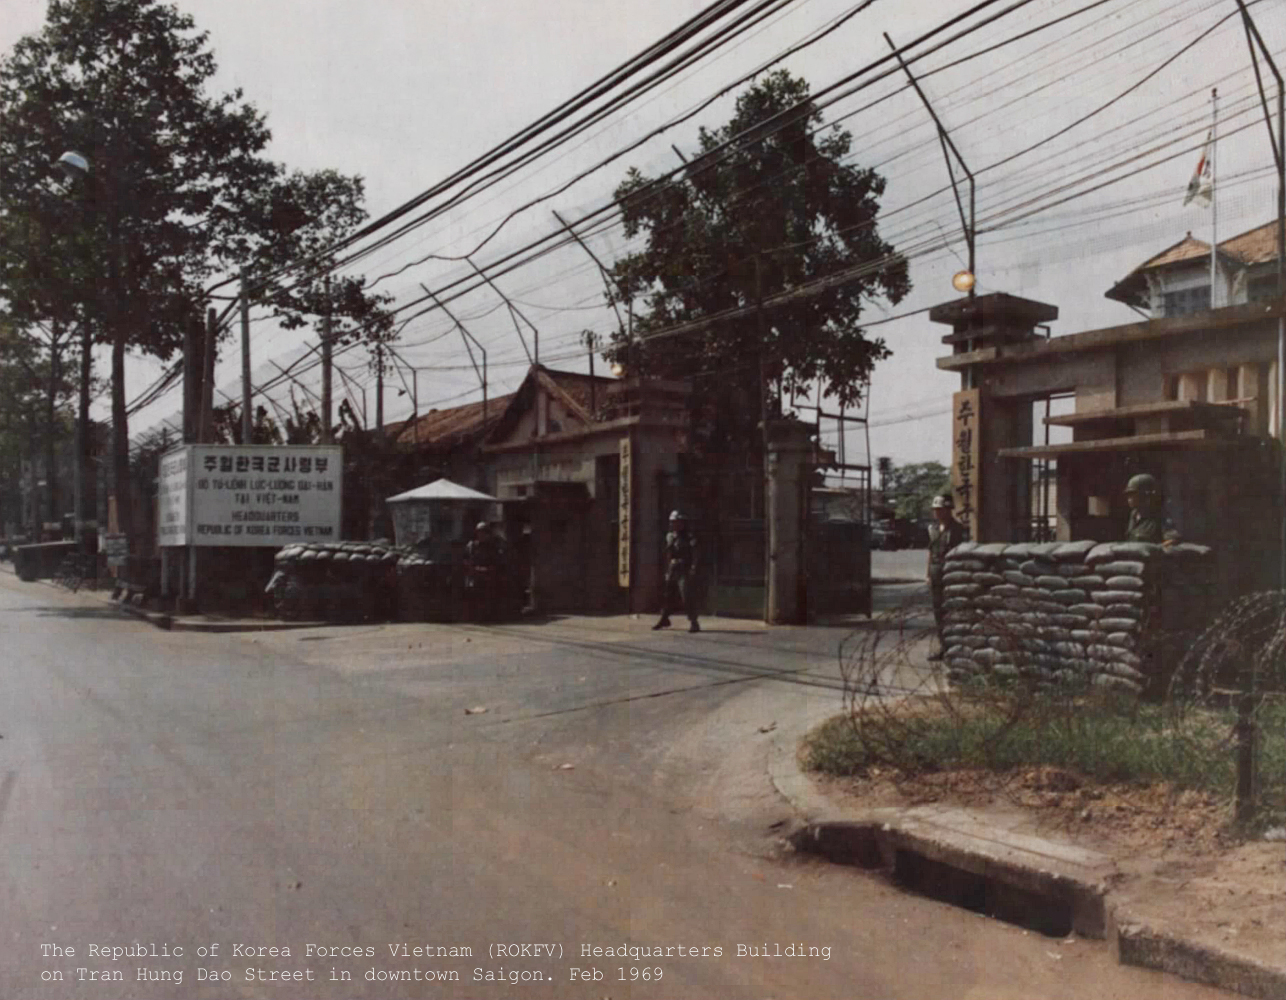 The Republic of Korea Forces Vietnam (ROKFV) Headquarters. Feb 1969